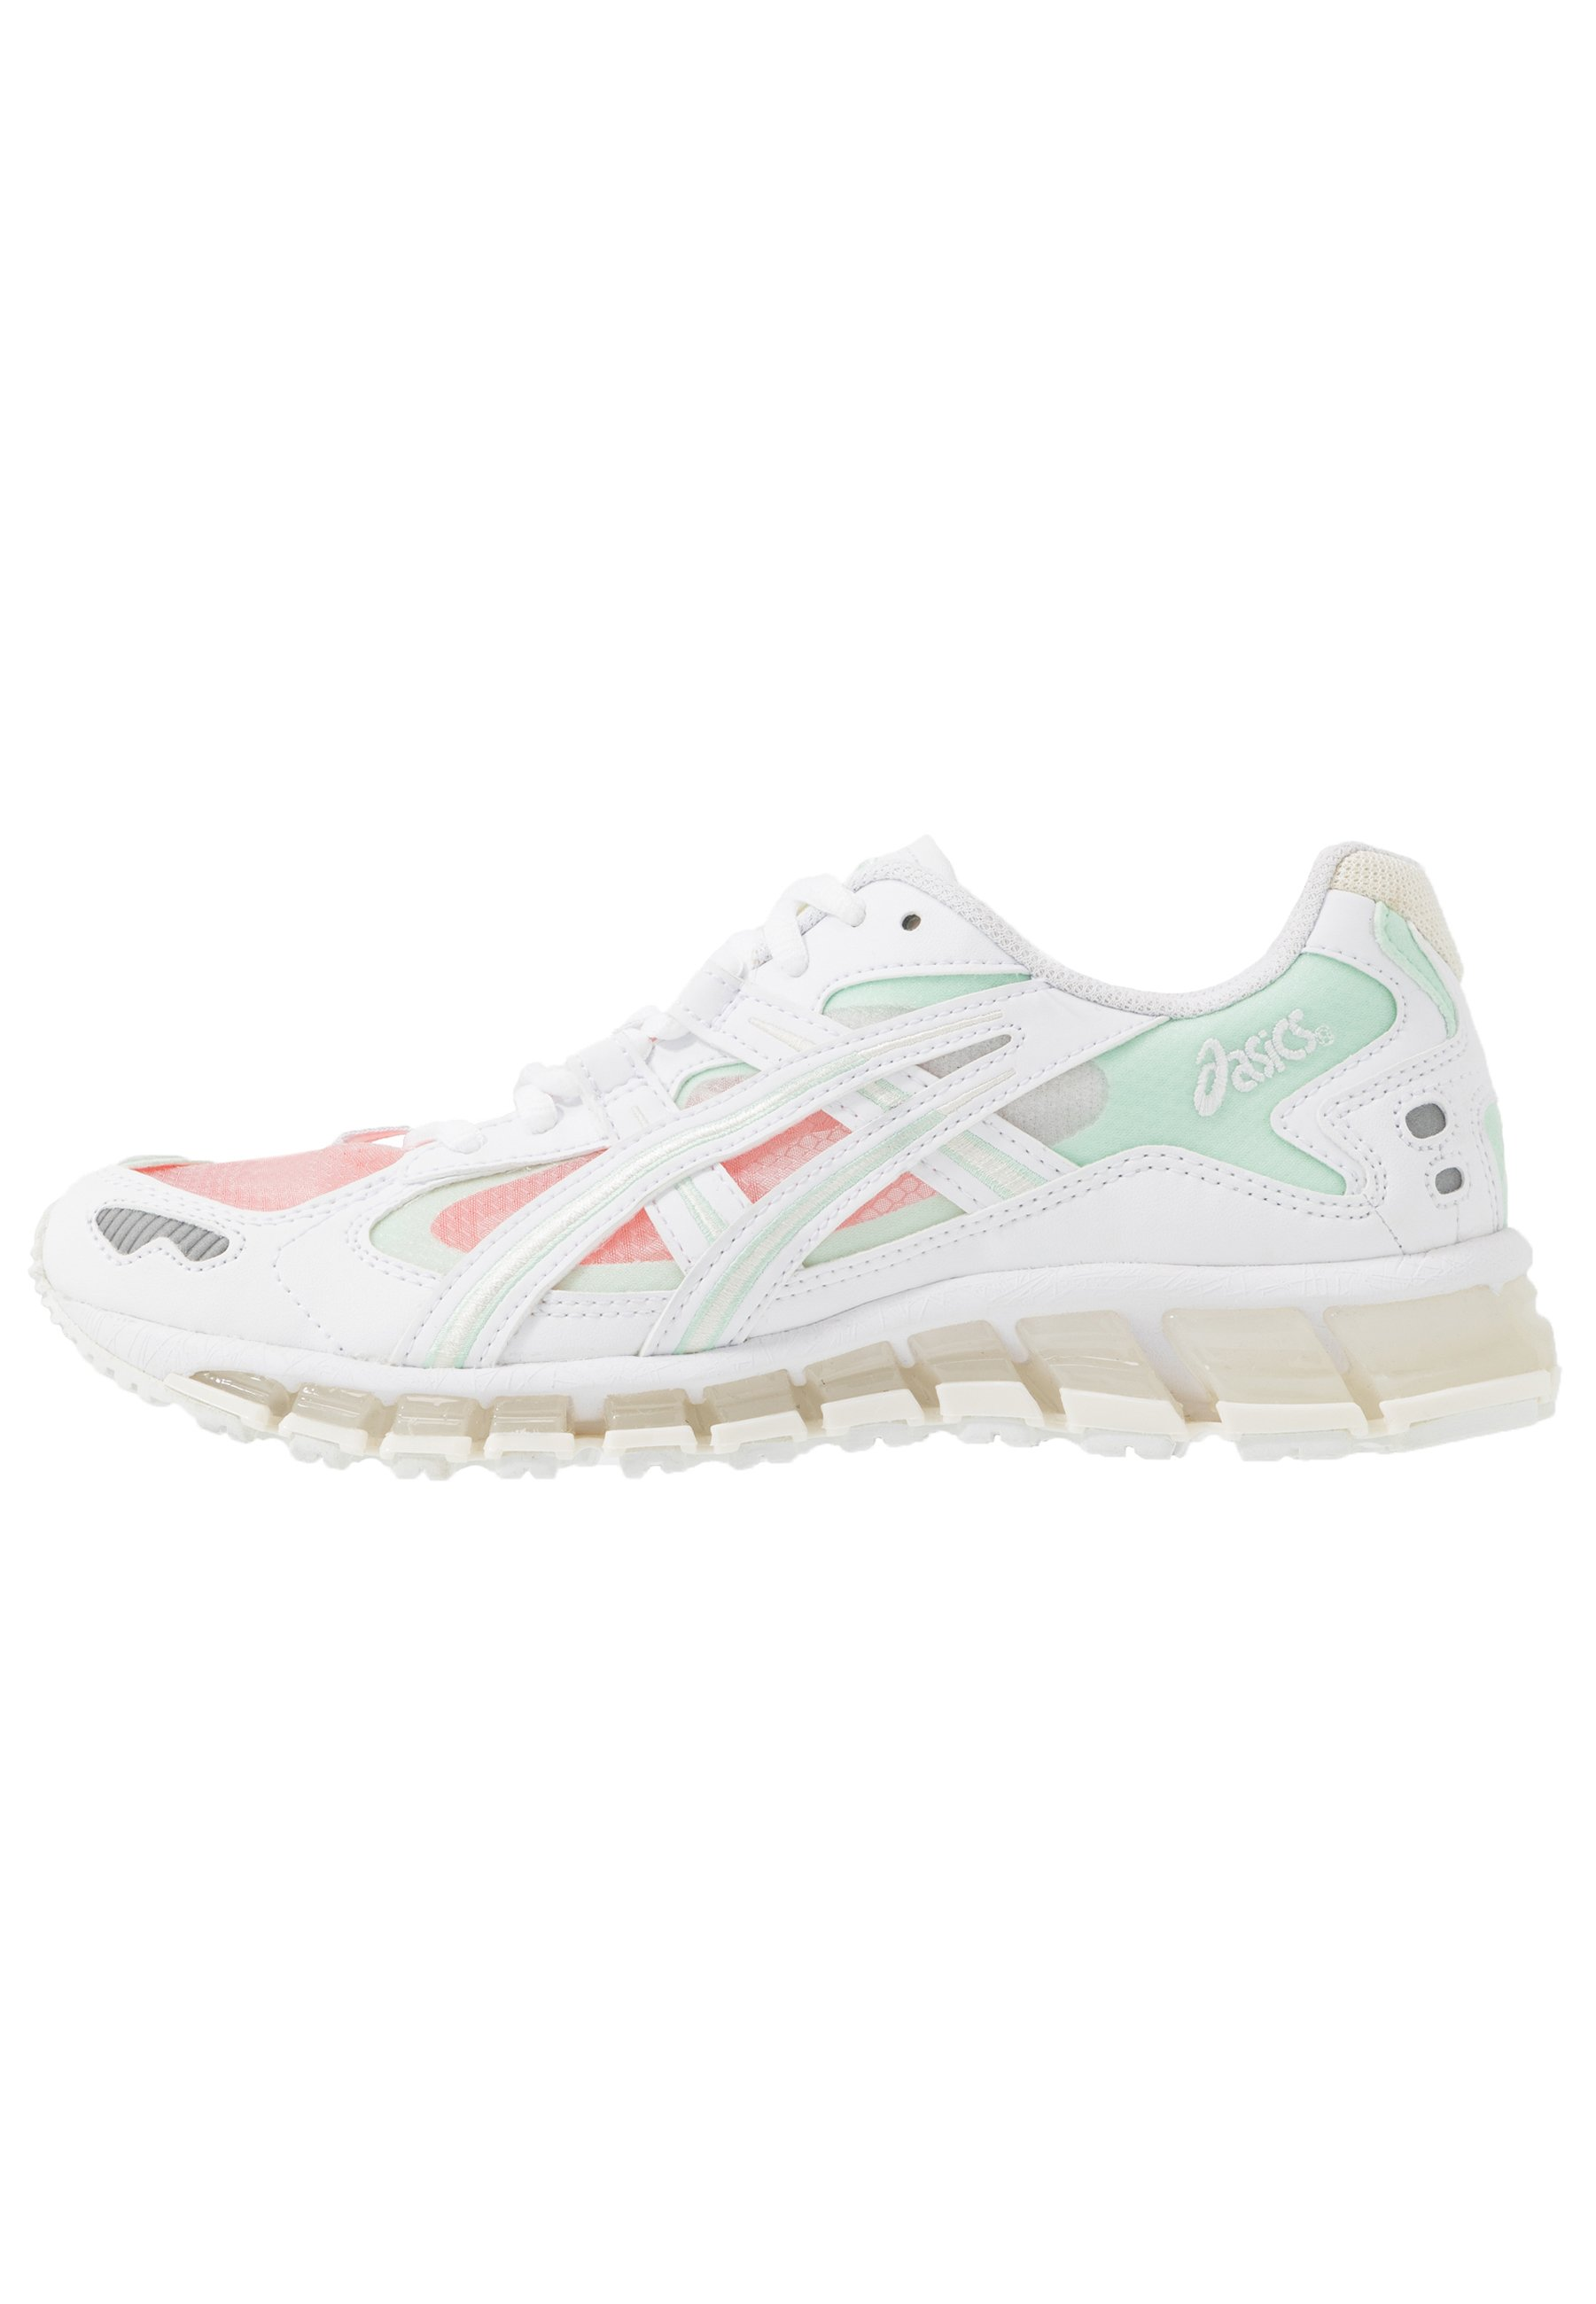 ASICS SportStyle GEL KAYANO 5 360 Sneakers laag white